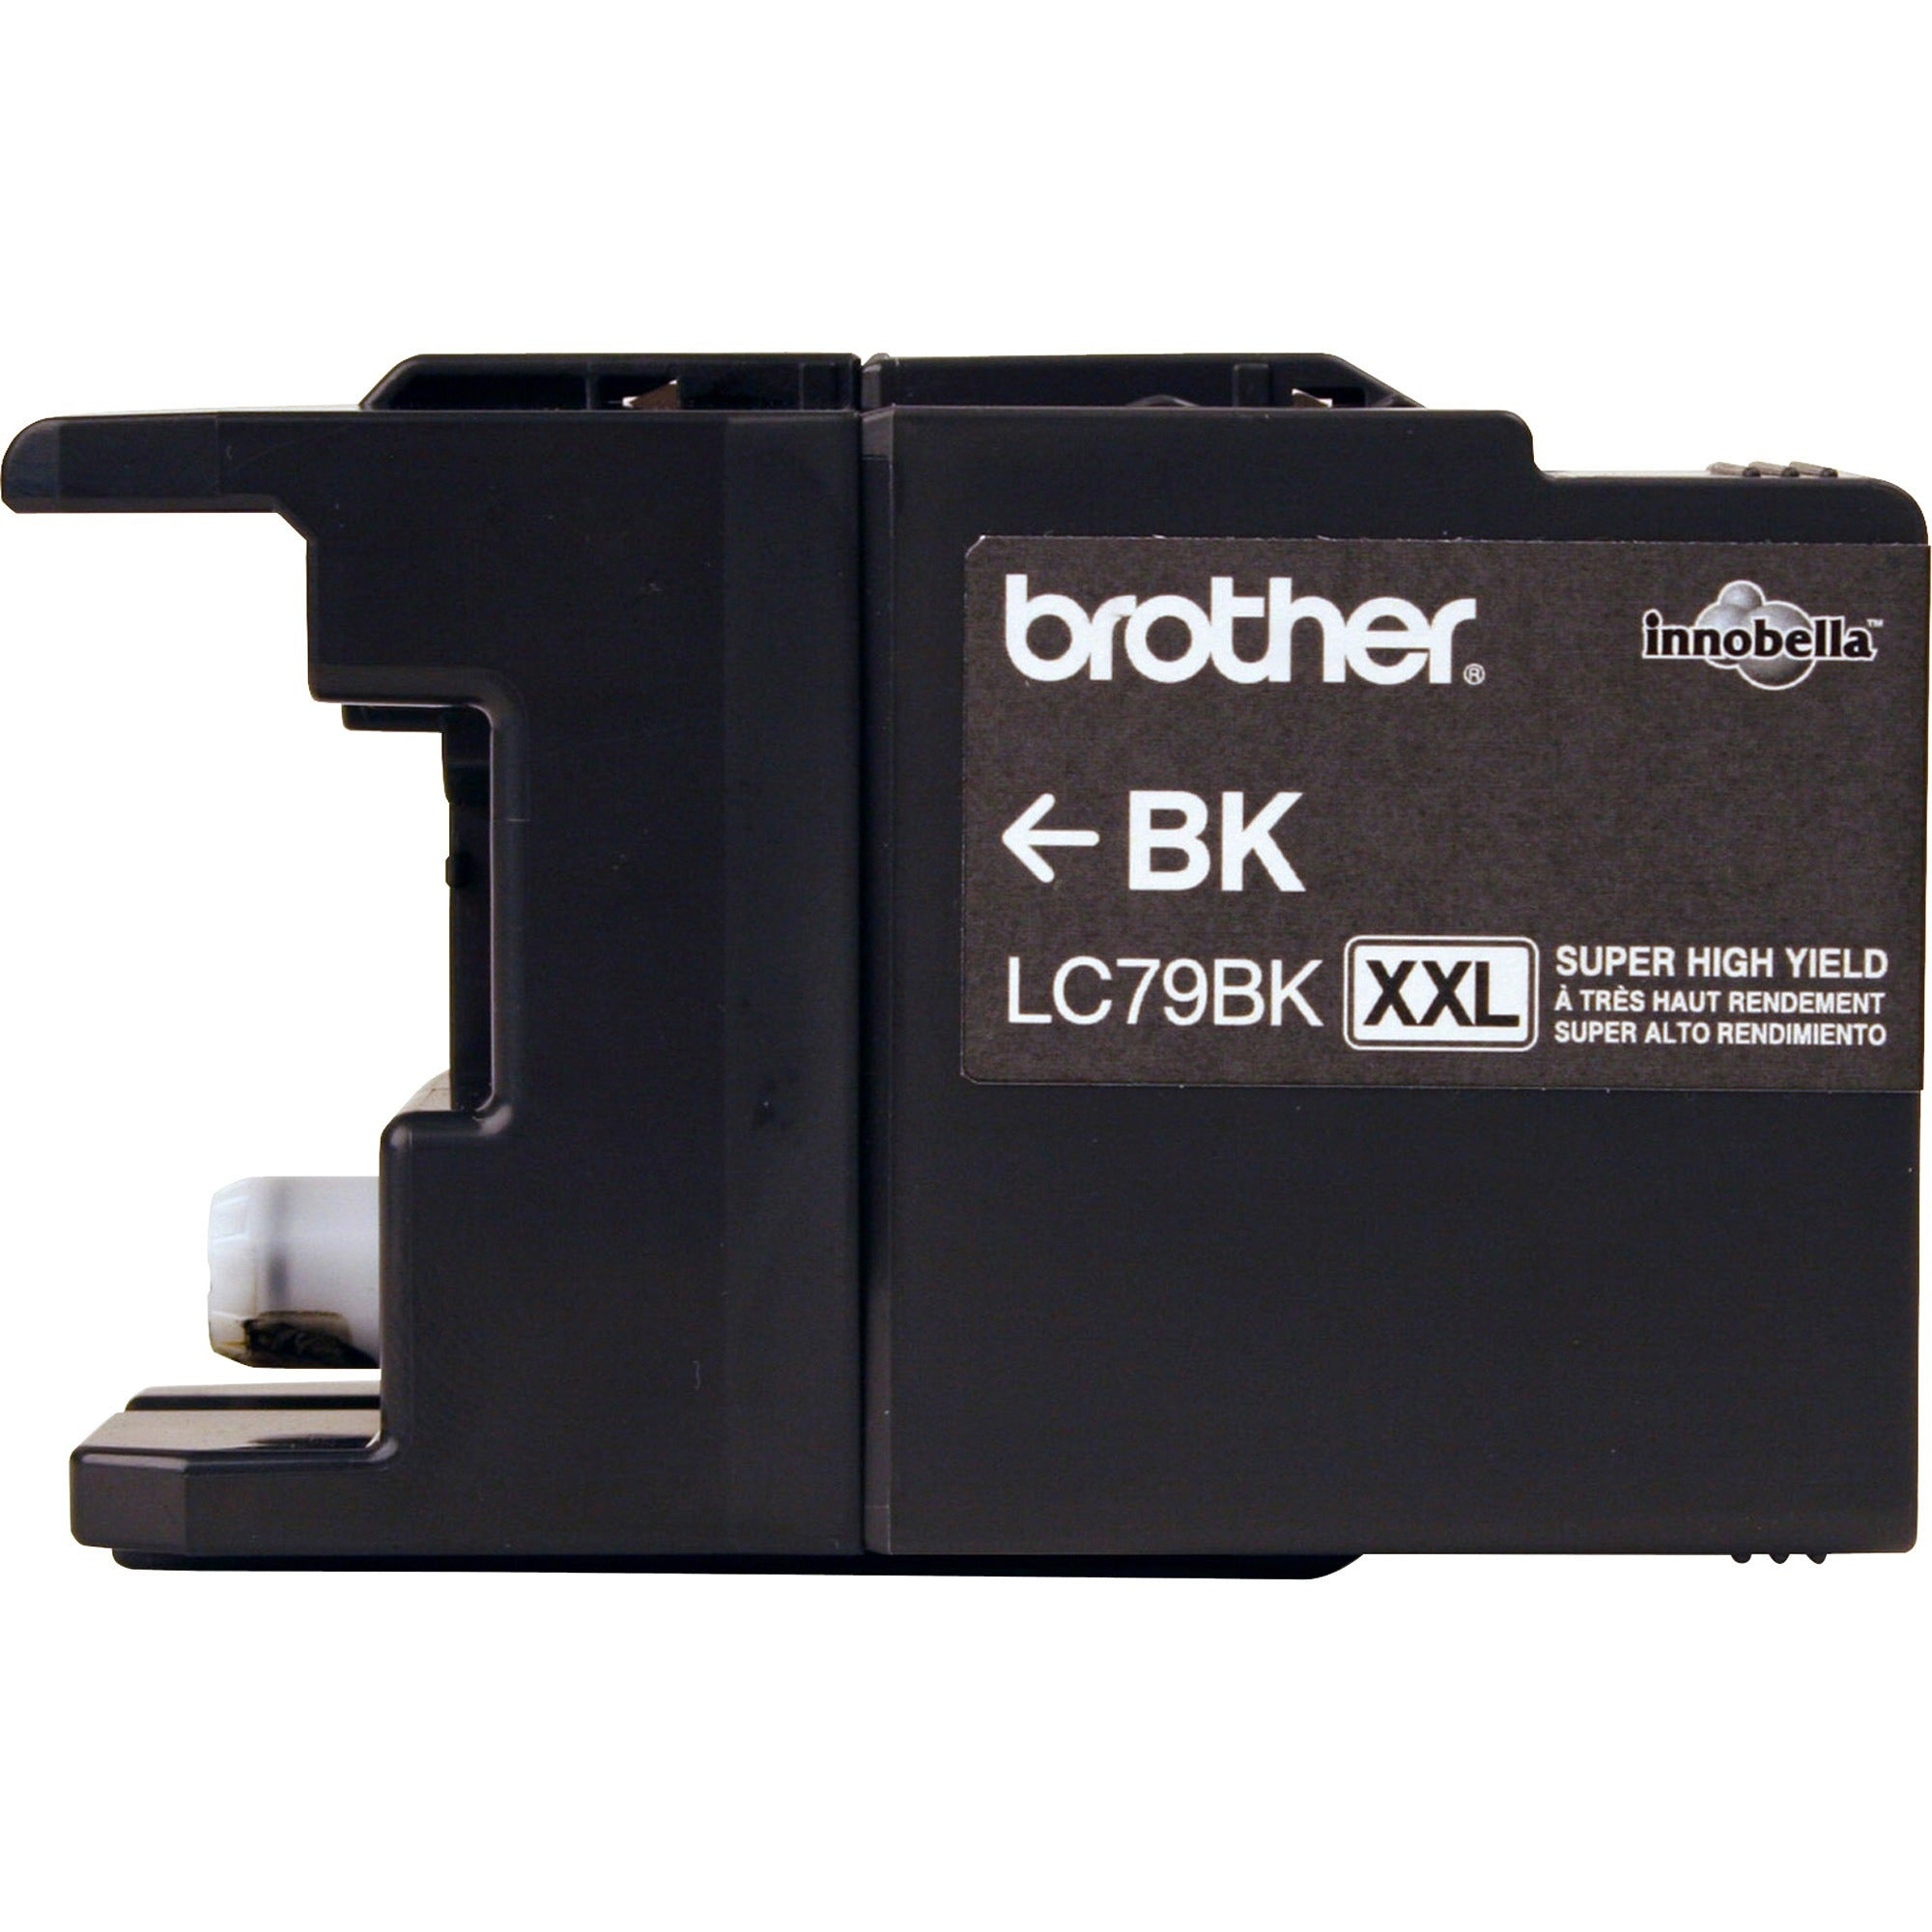 Brother Innobella LC79XXL BK Original Ink Cartridge